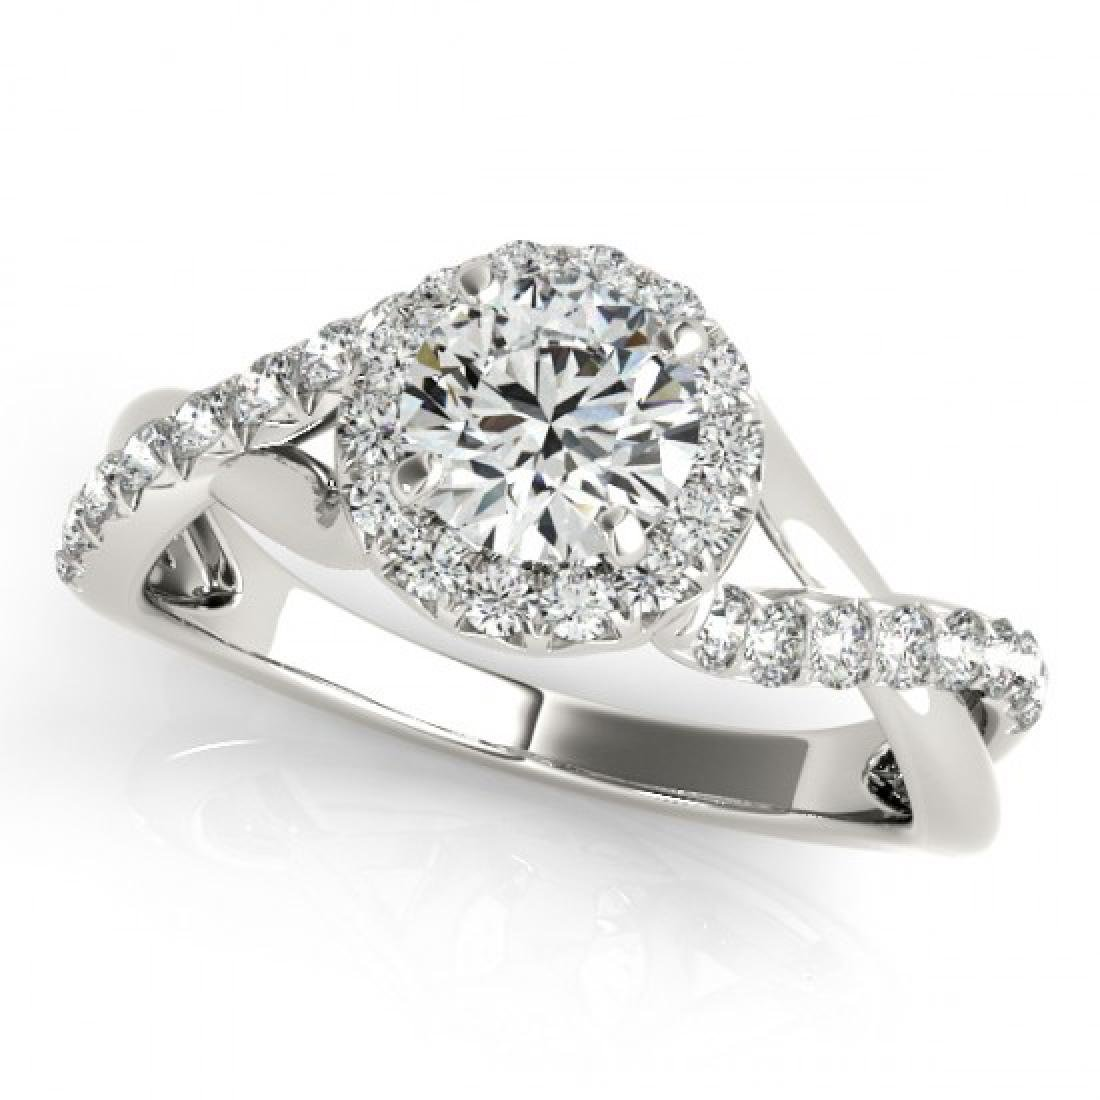 0.6 CTW Certified VS/SI Diamond Solitaire Halo Ring 14K